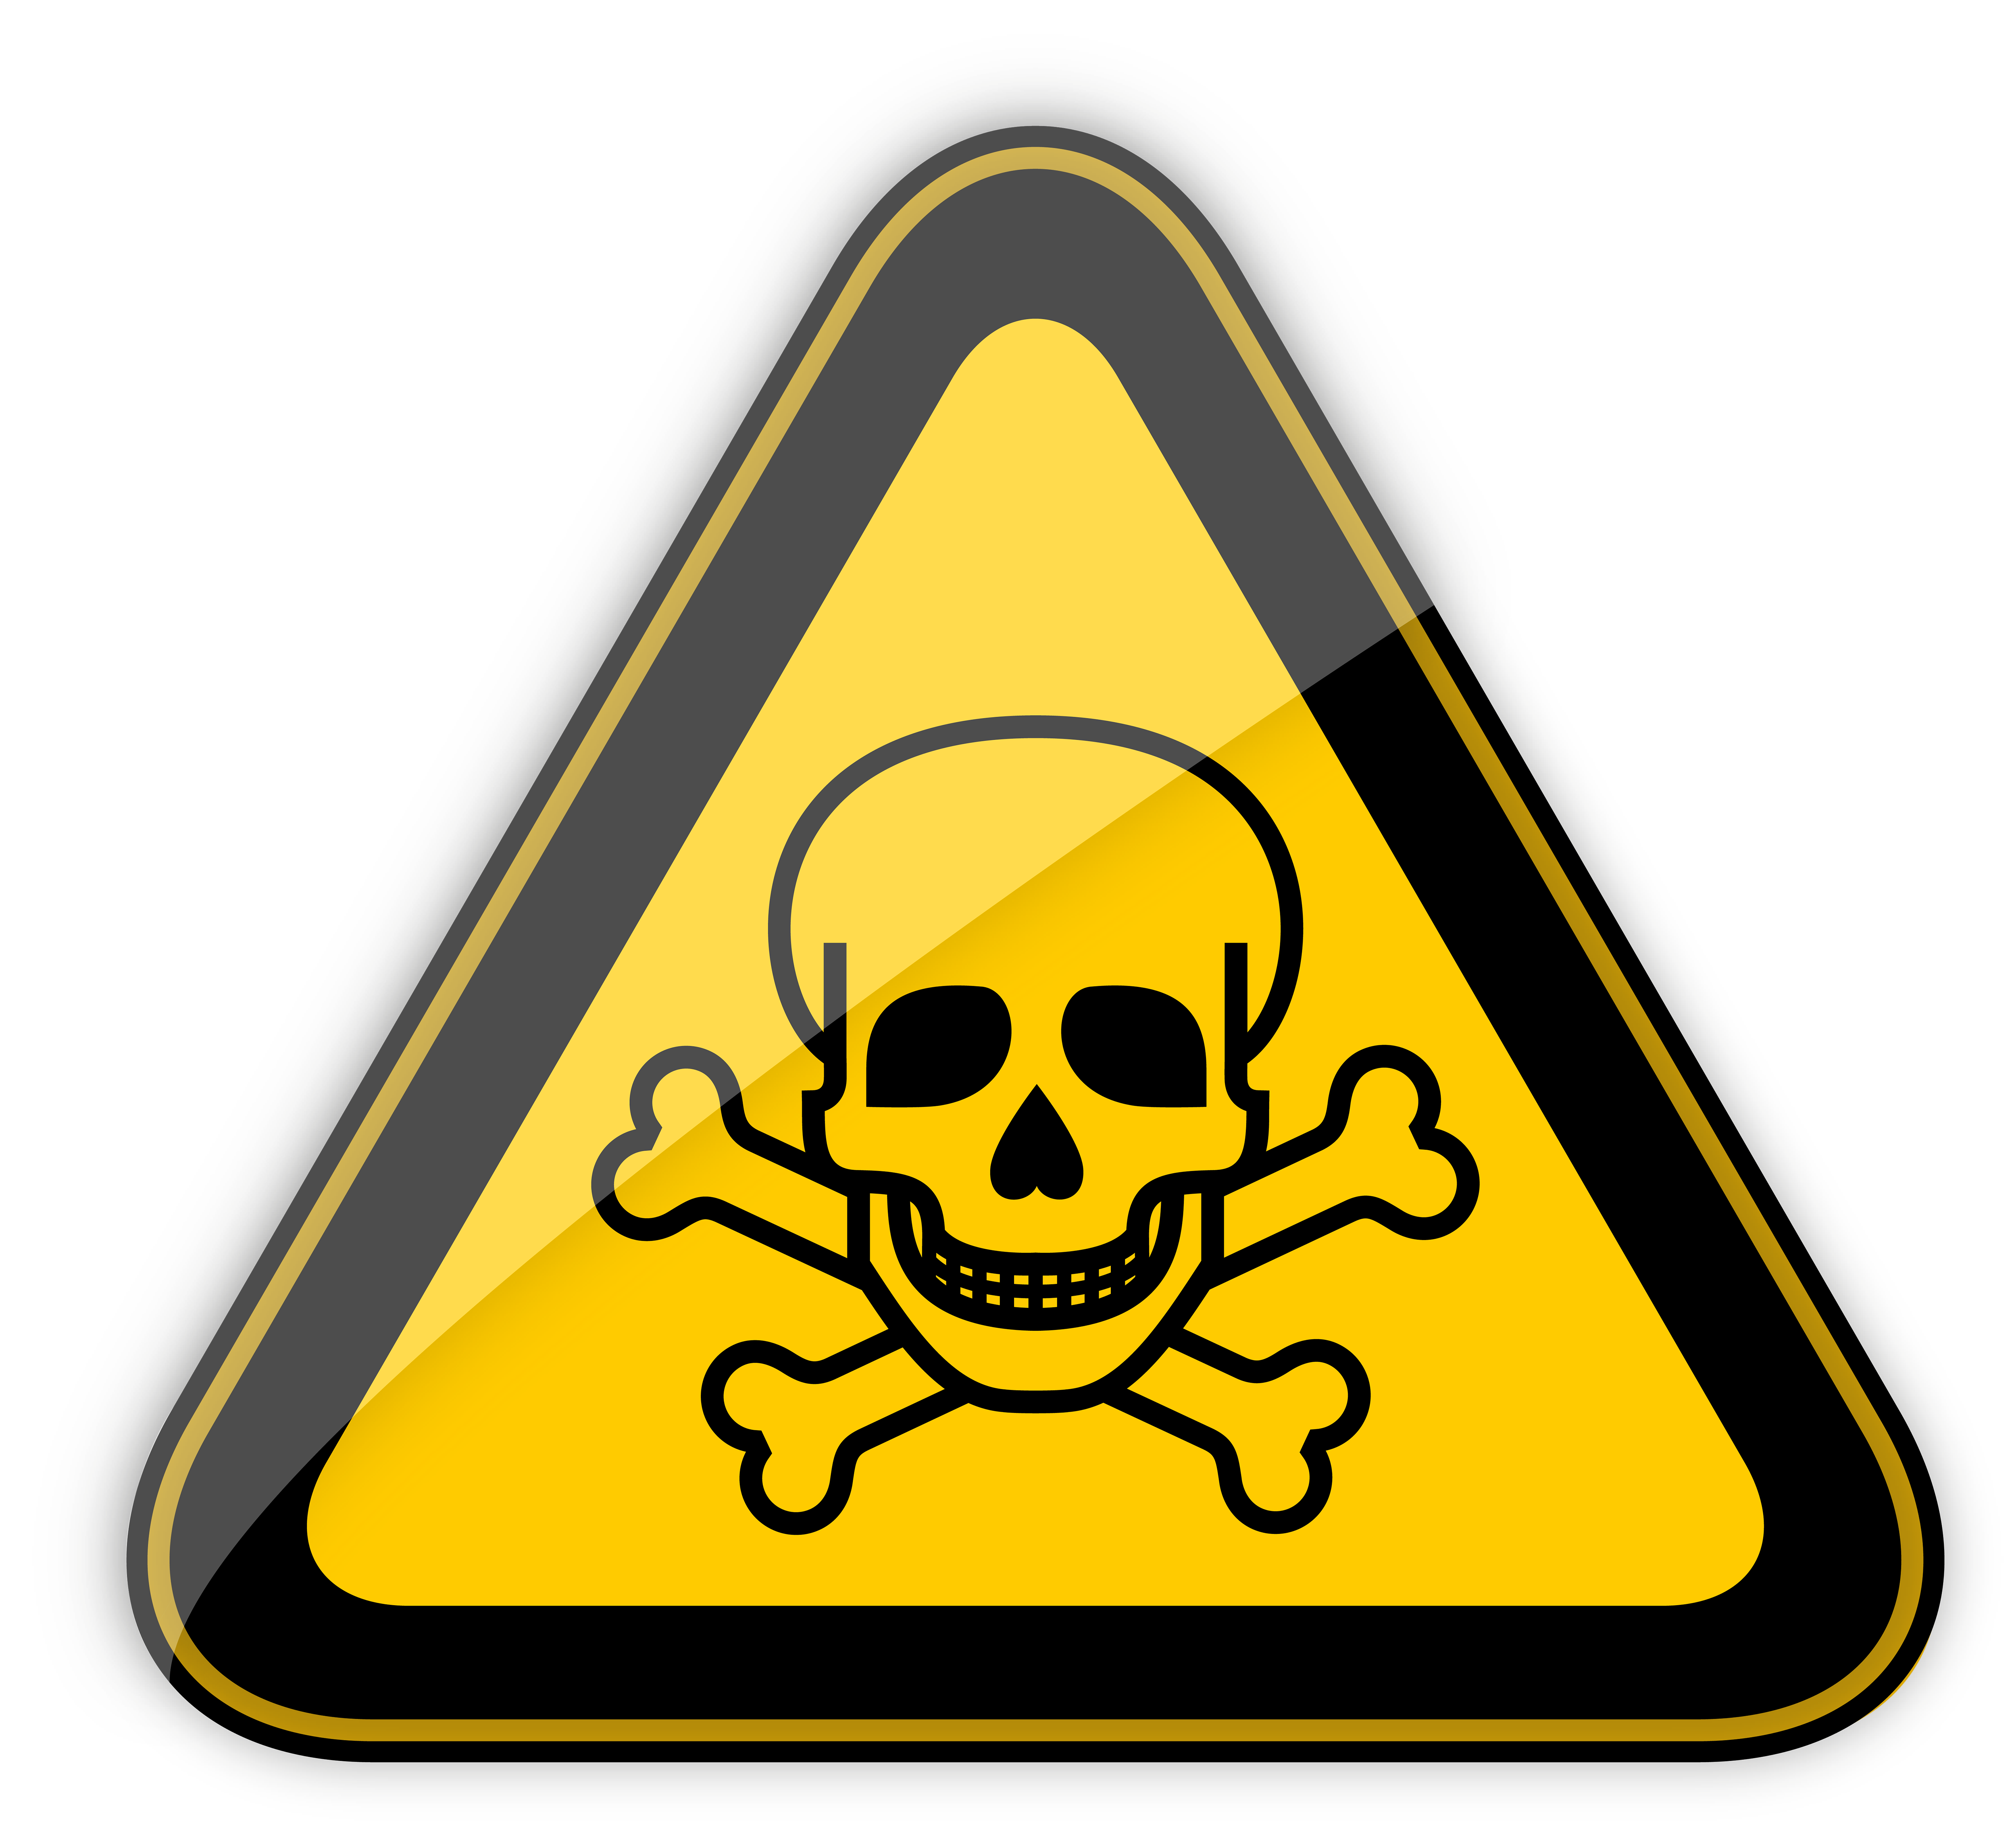 Warning sign png clipart. Toxic transparent image black and white download